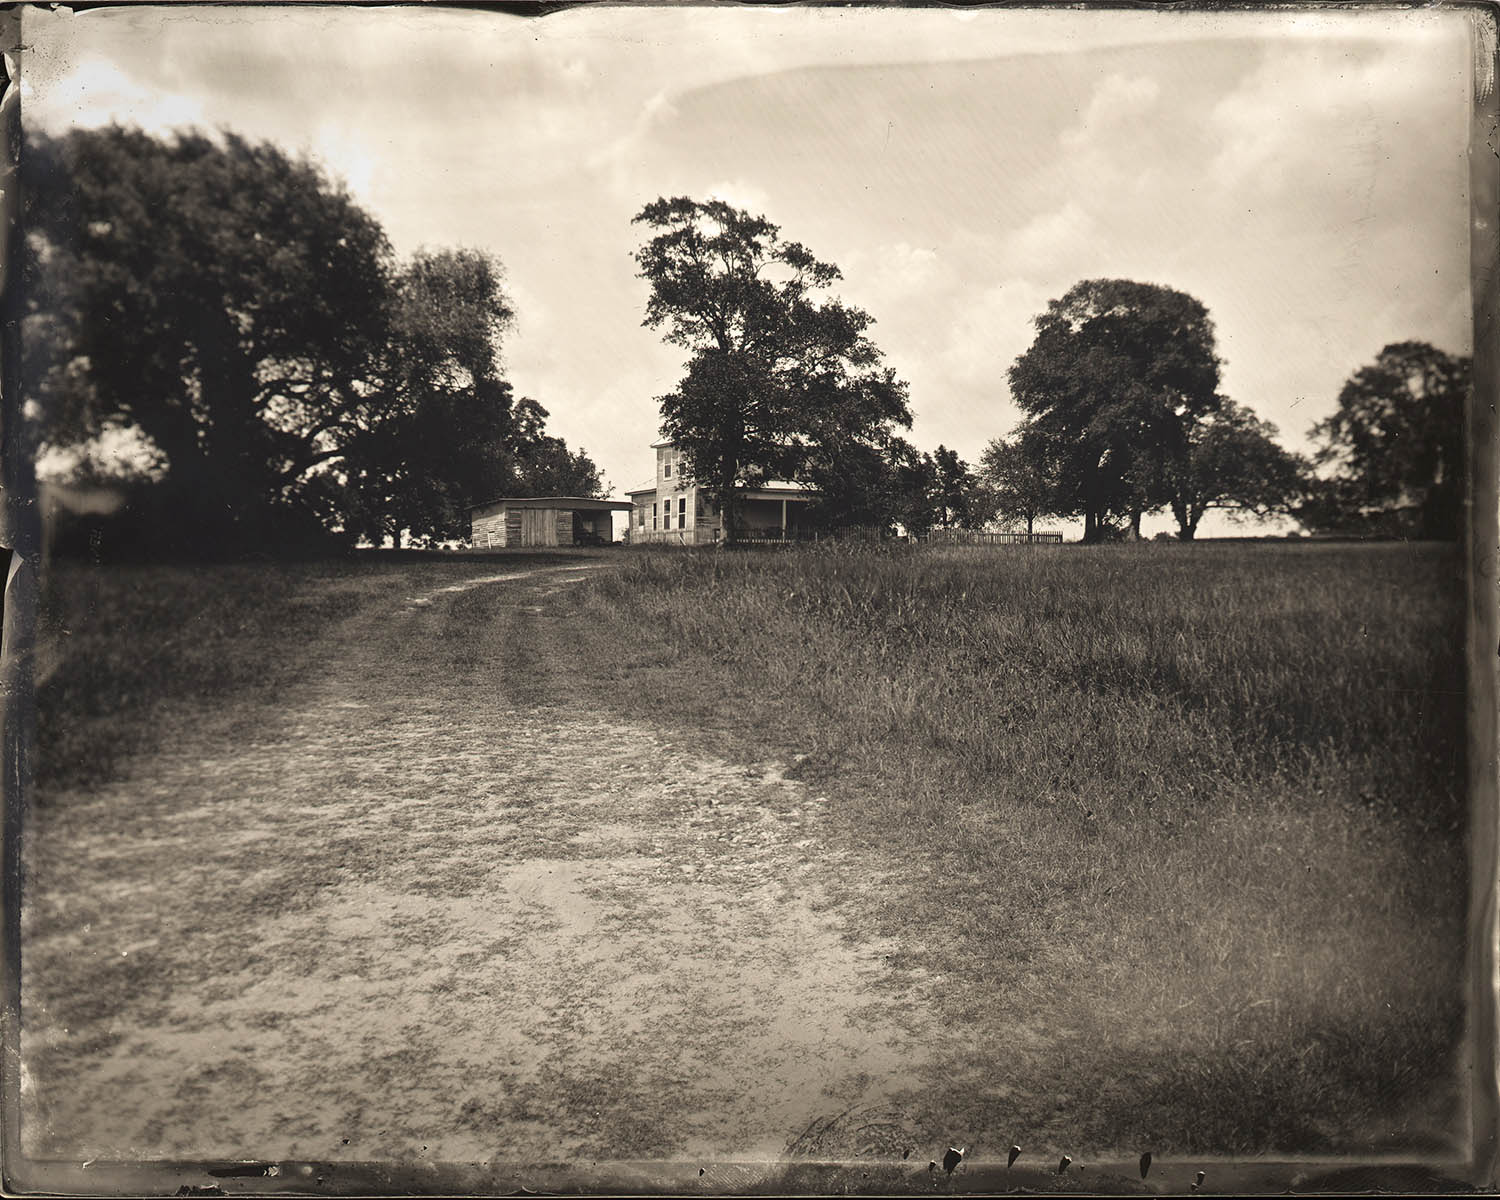 Title : Navasota Farmhouse  By:  Japheth Storlie  www.gravurelumiere.com